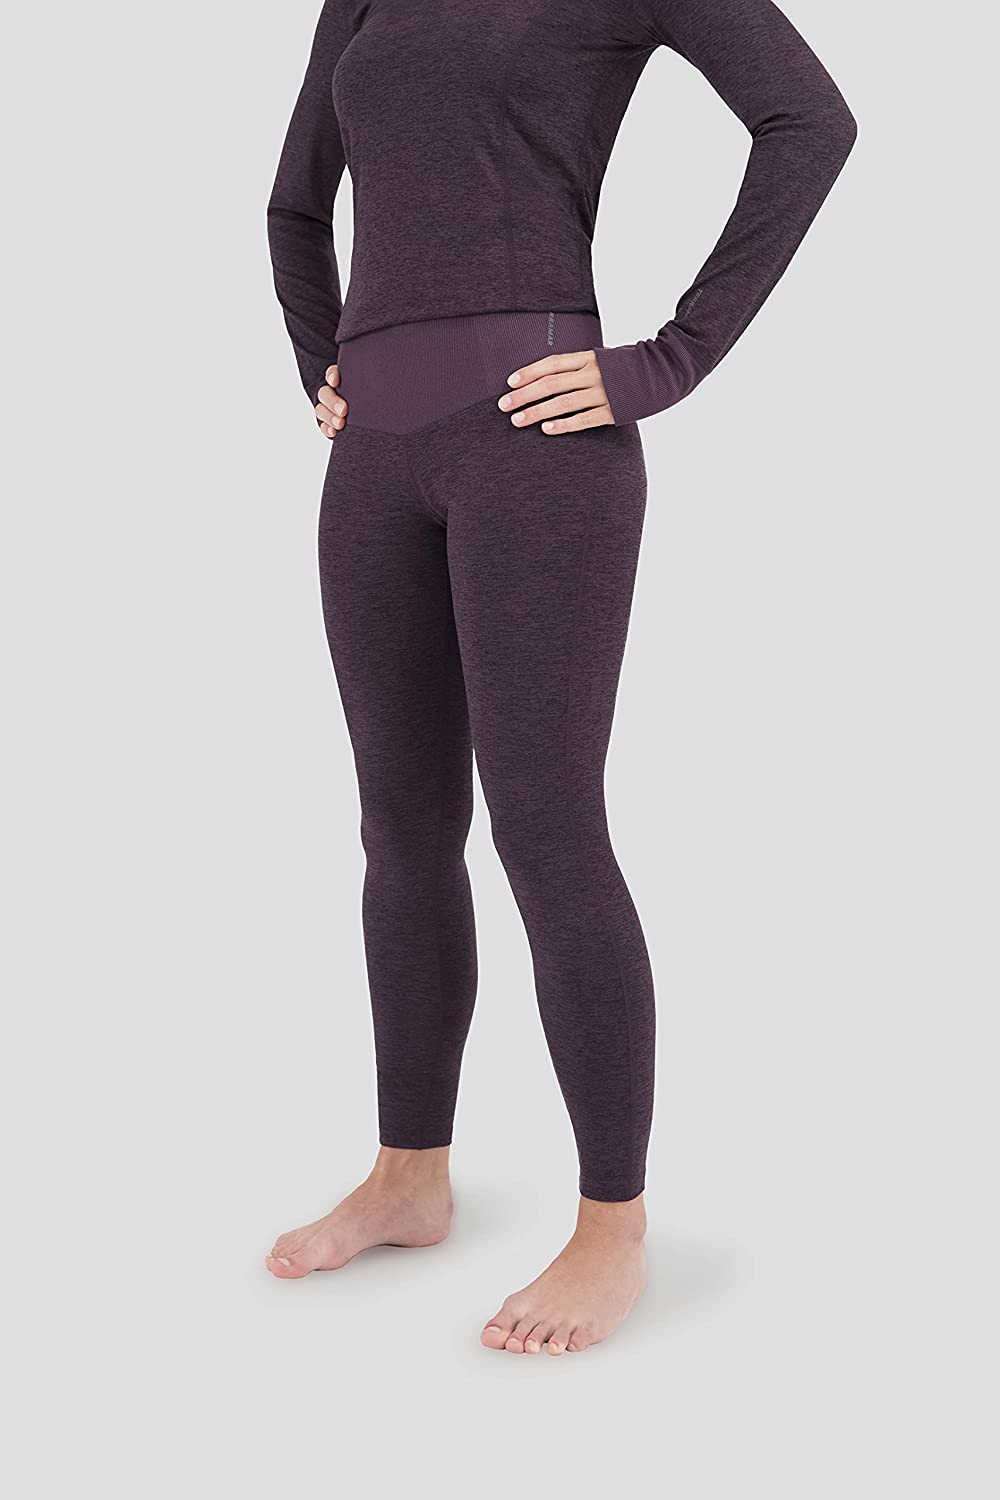 Terramar High material Women's All stores are sold Cloud Nine Melan Performance Tights Blackberry